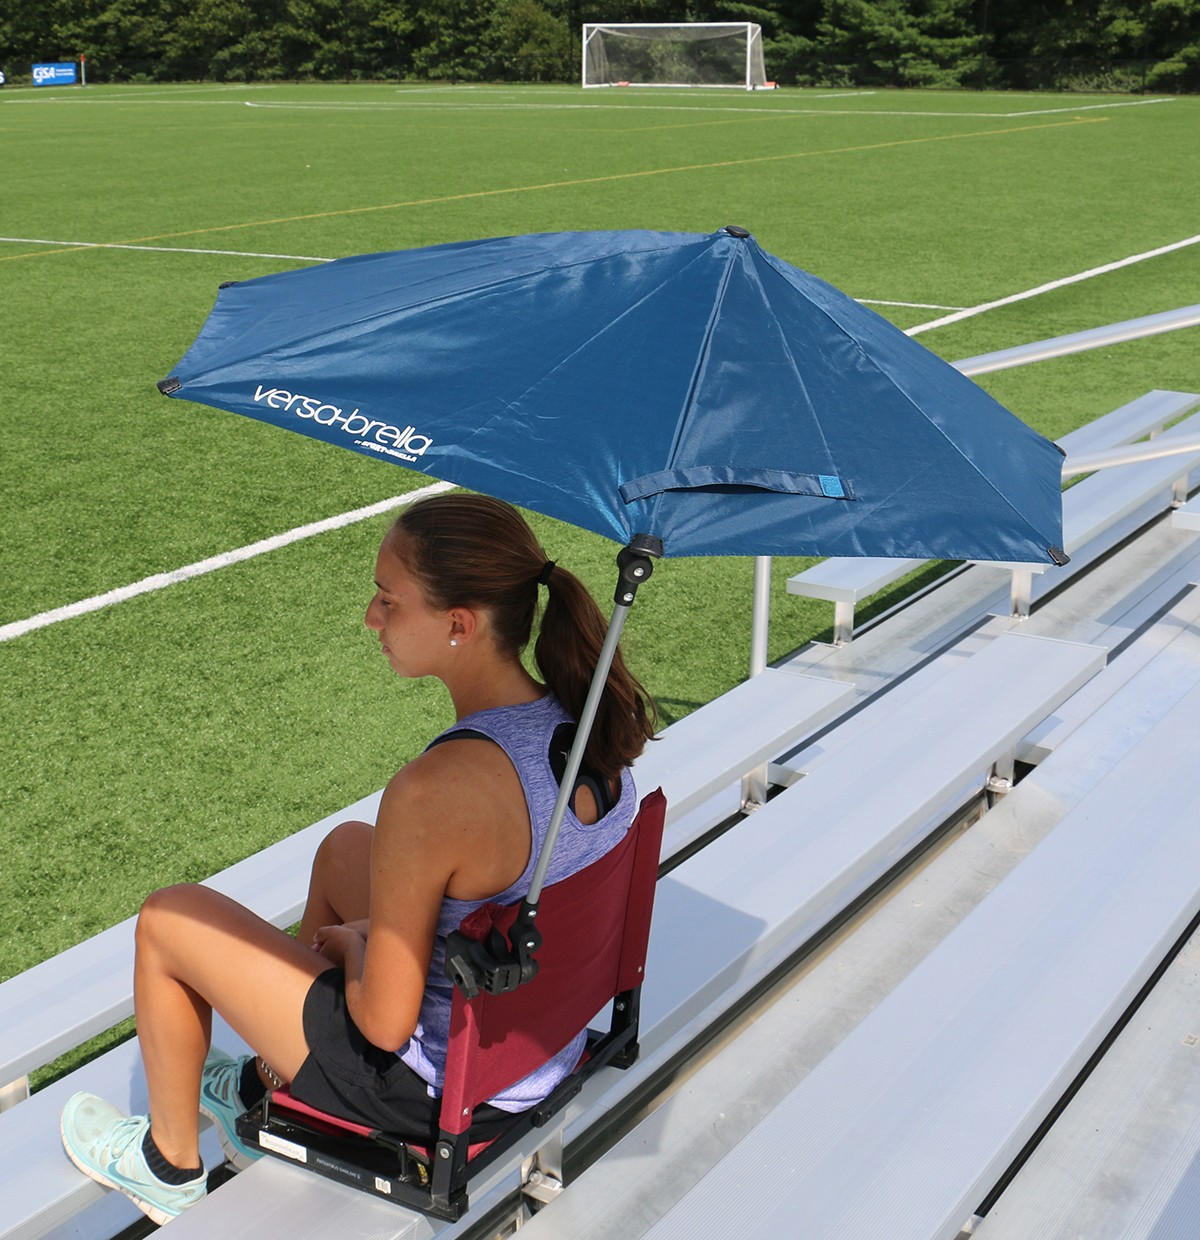 Chair With Umbrella Stadium Chair Bleacher Seat Wsc2 Deluxe Model 3